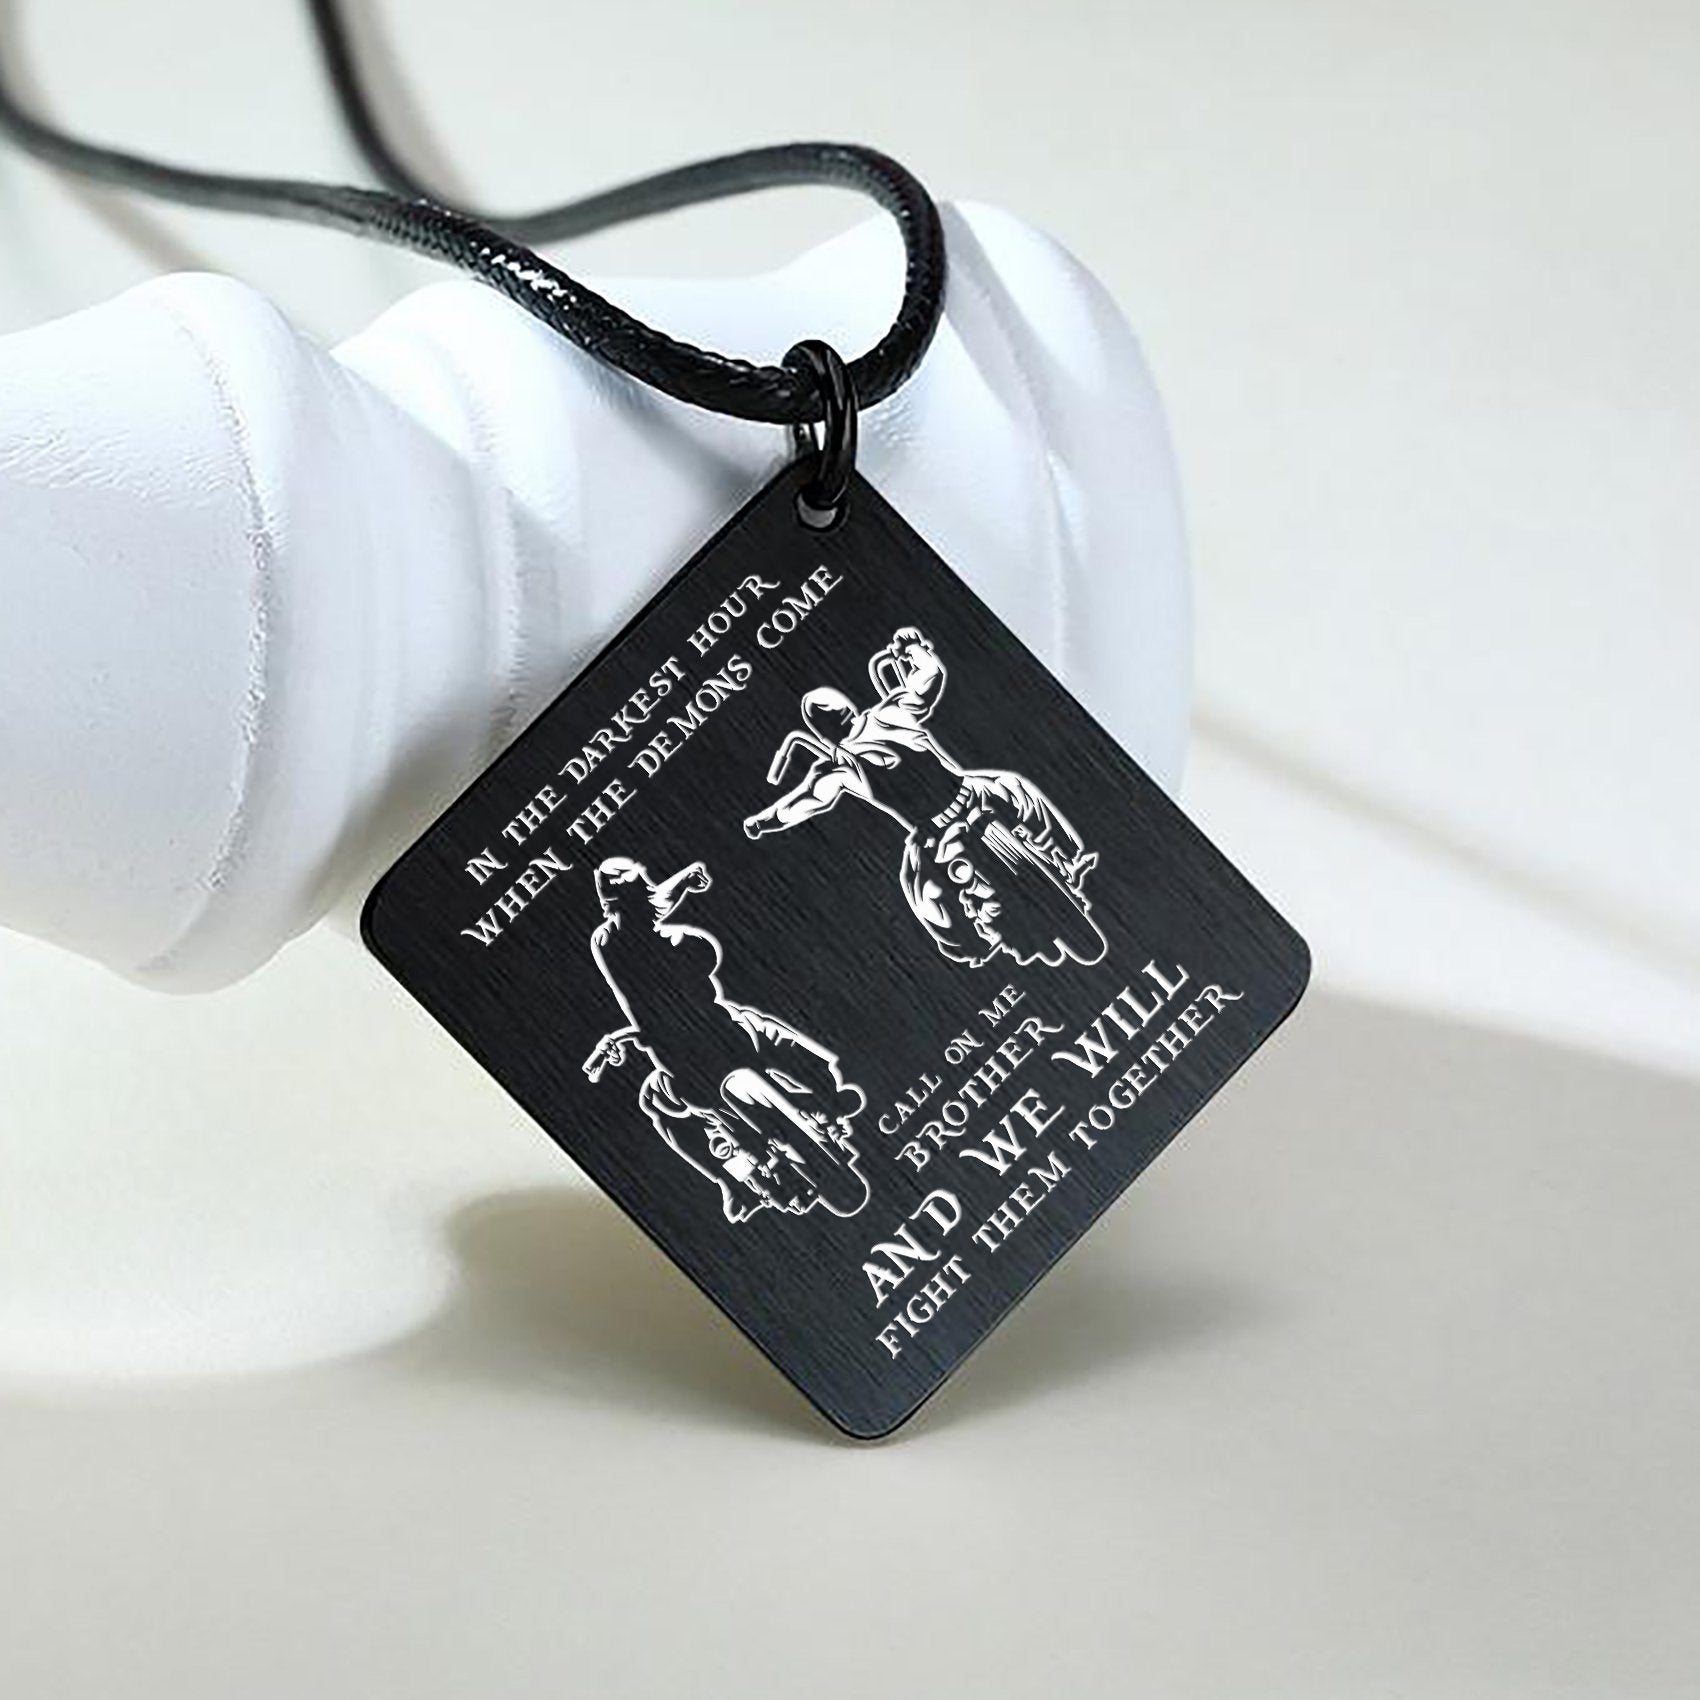 (LP22) BIKER BLACK ENGRAVED NECKLACE- CALL ON ME. FREE SHIPPING FROM 2 ITEMS